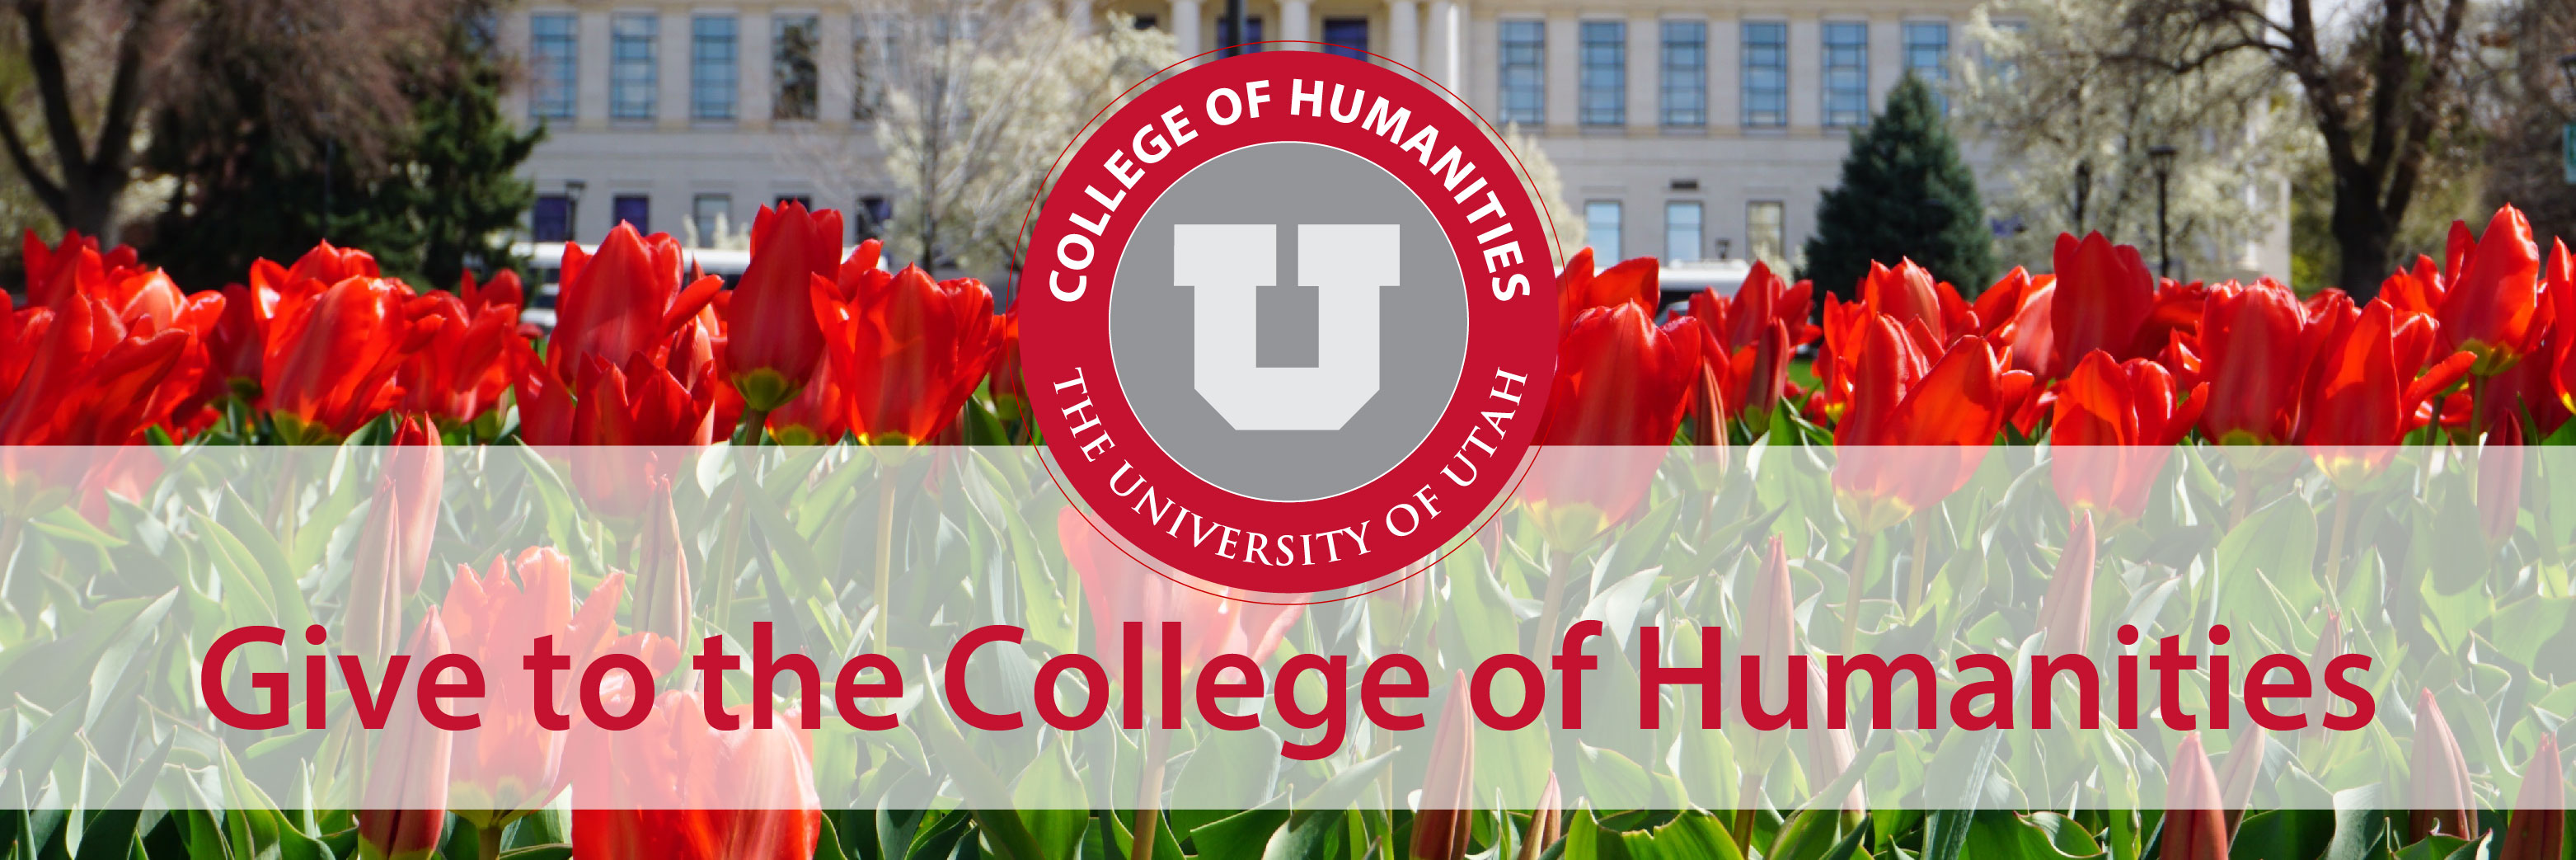 Give to the College of Humanities